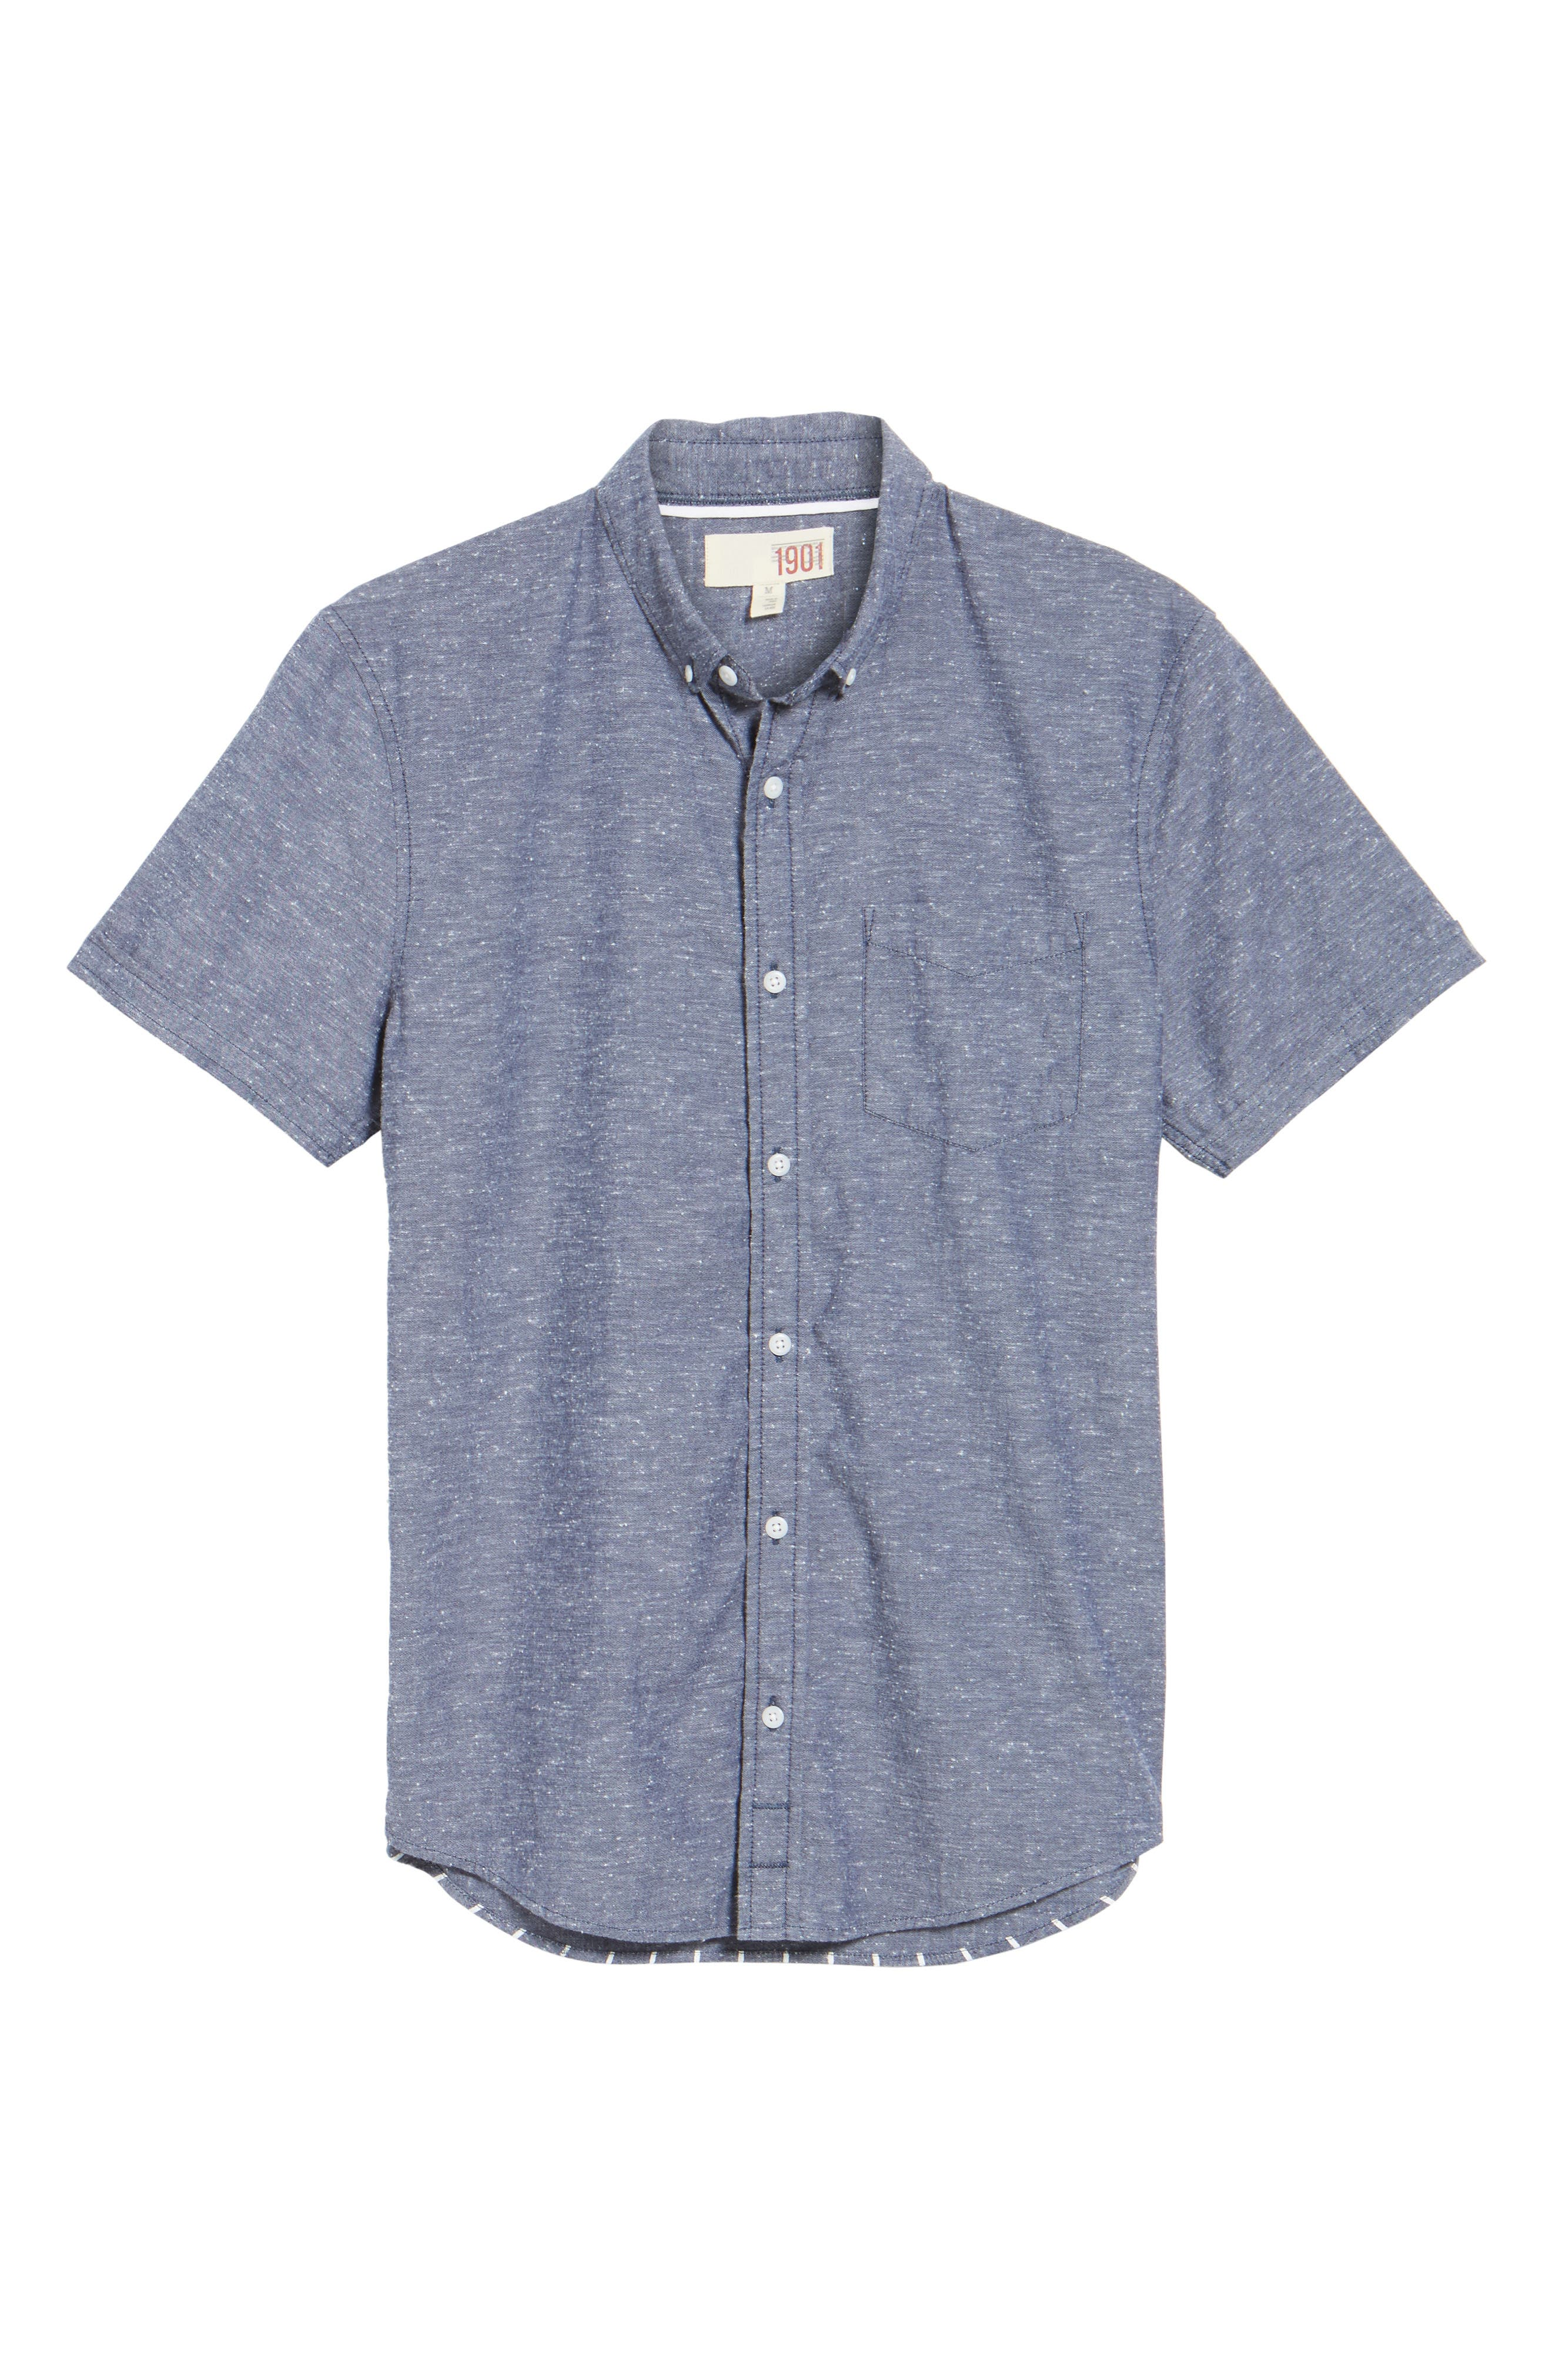 Placed Stripe Chambray Shirt,                             Alternate thumbnail 6, color,                             410